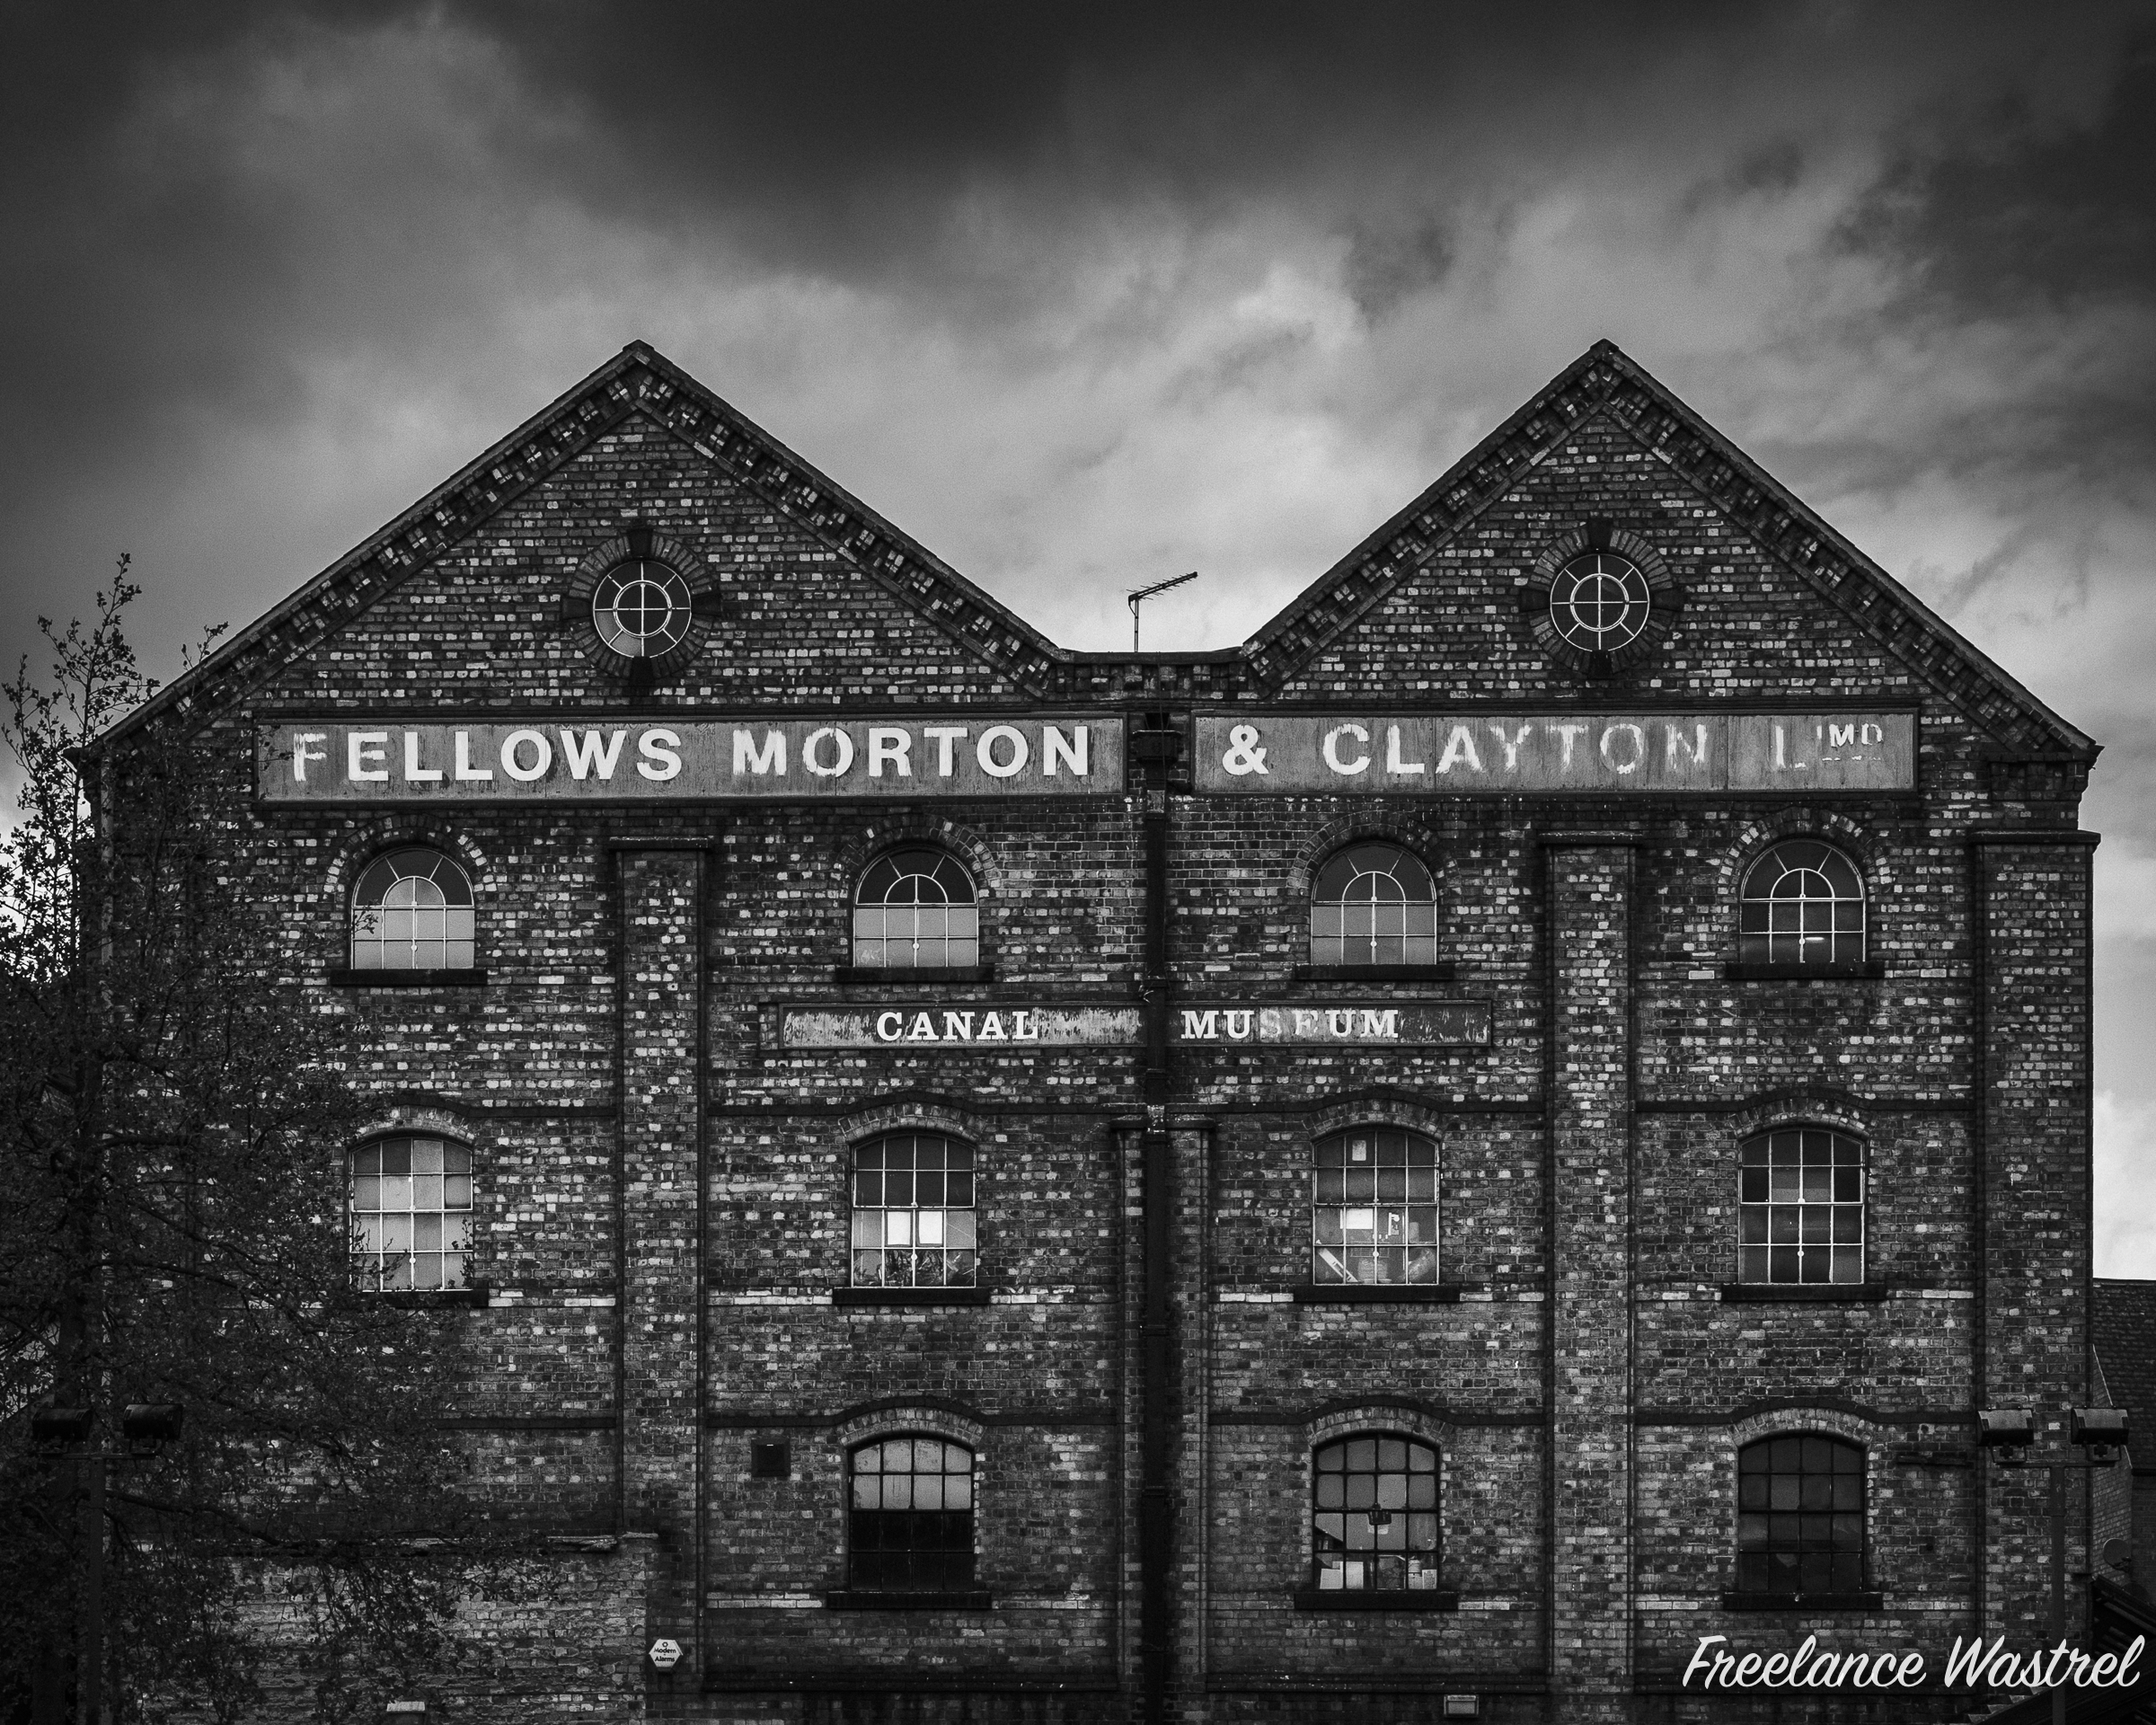 Fellows Morton & Clayton Ltd